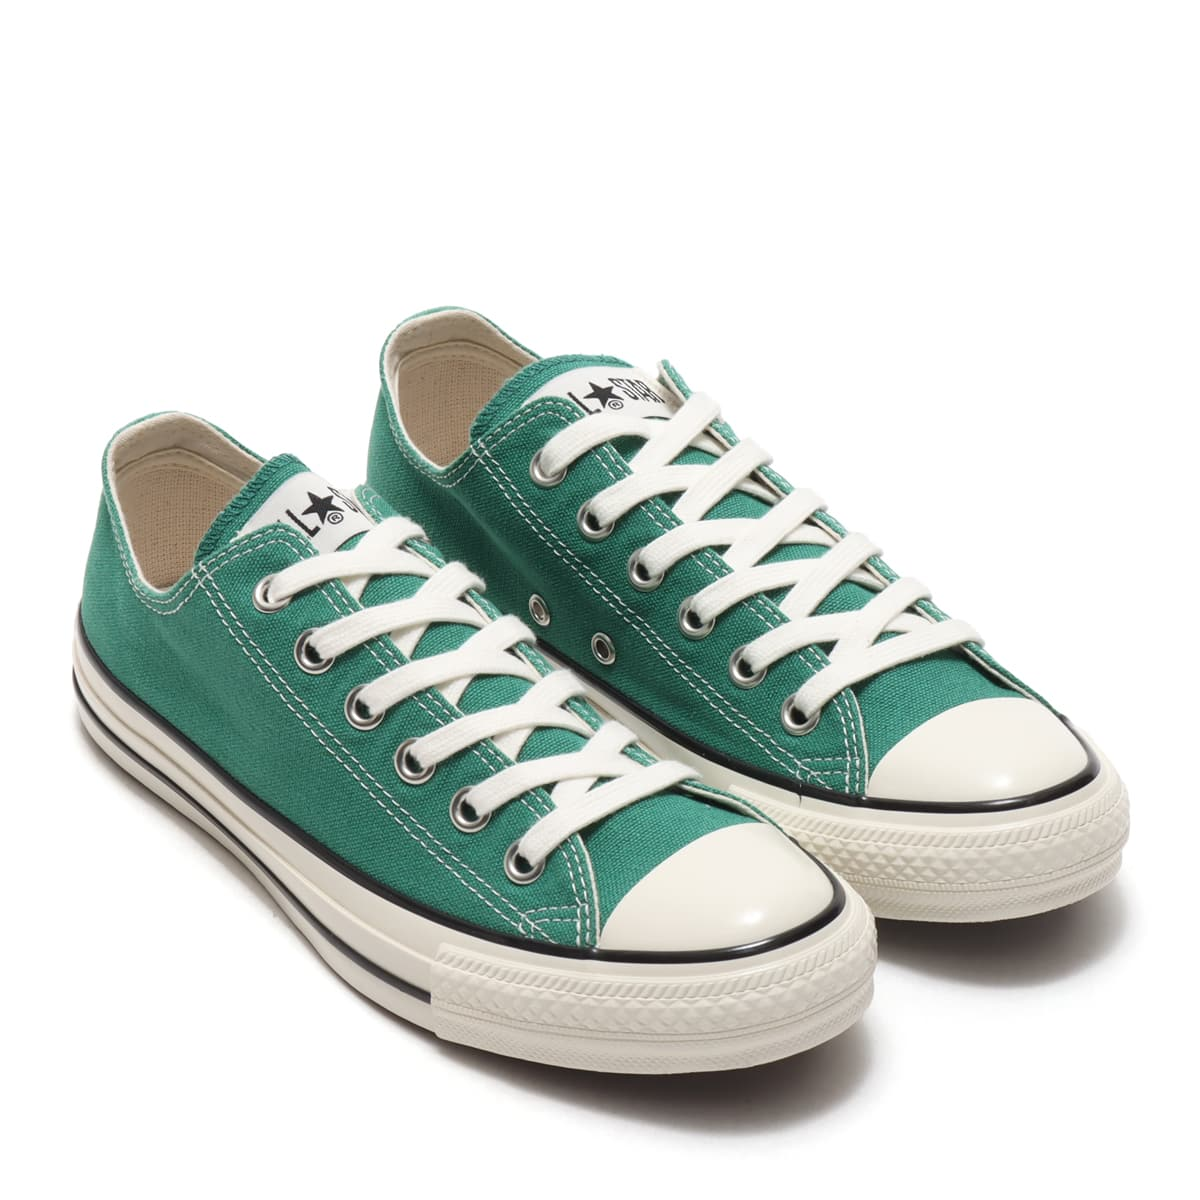 CONVERSE ALL STAR US COLORS OX GREEN 21SS-I_photo_large